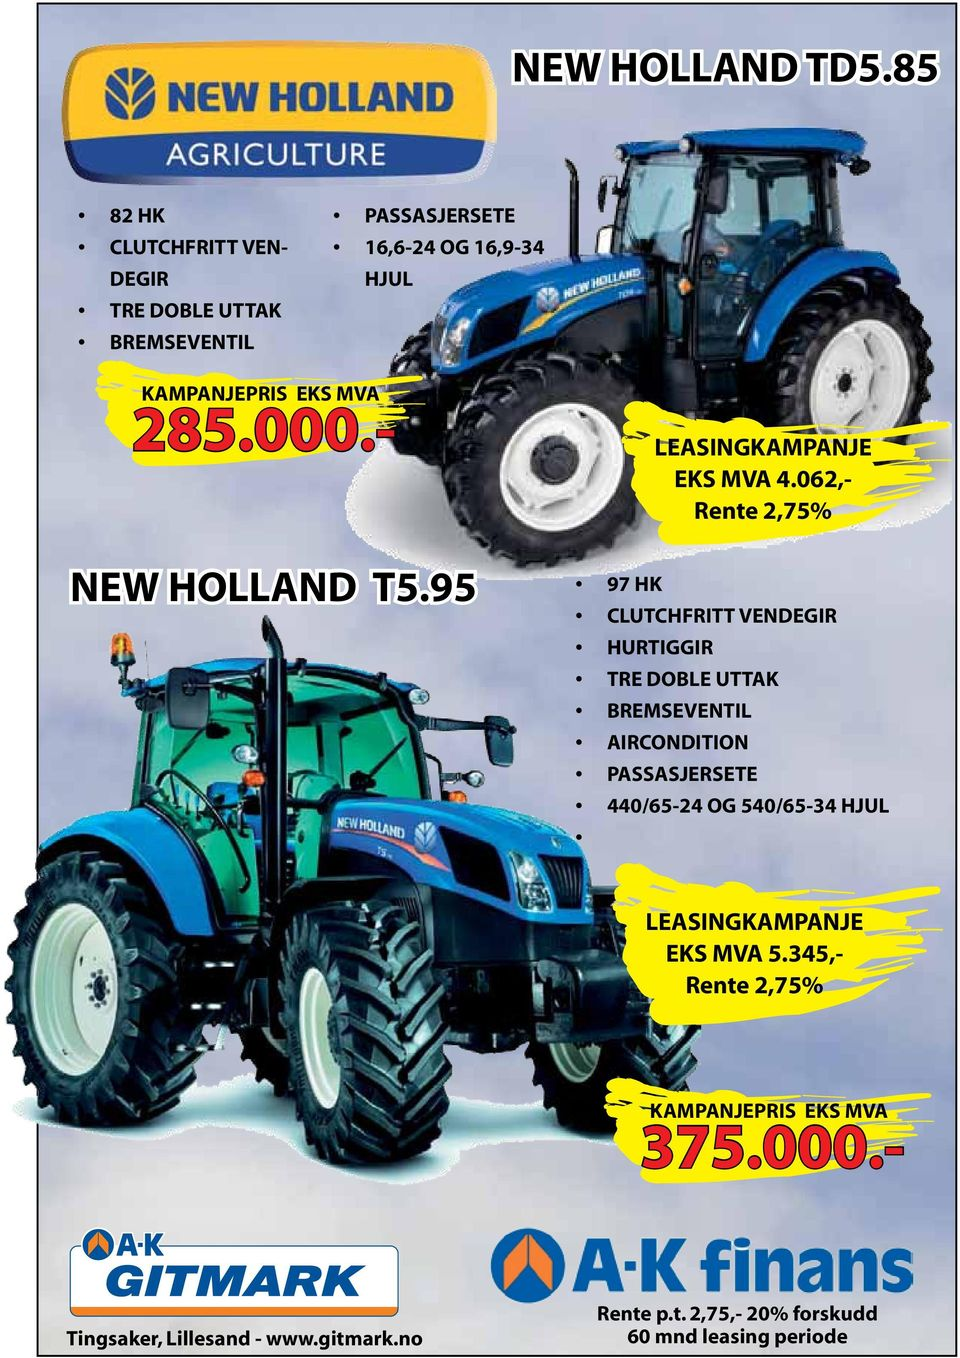 000.- LEASINGKAMPANJE EKS MVA 4.062,- NEW HOLLAND T5.